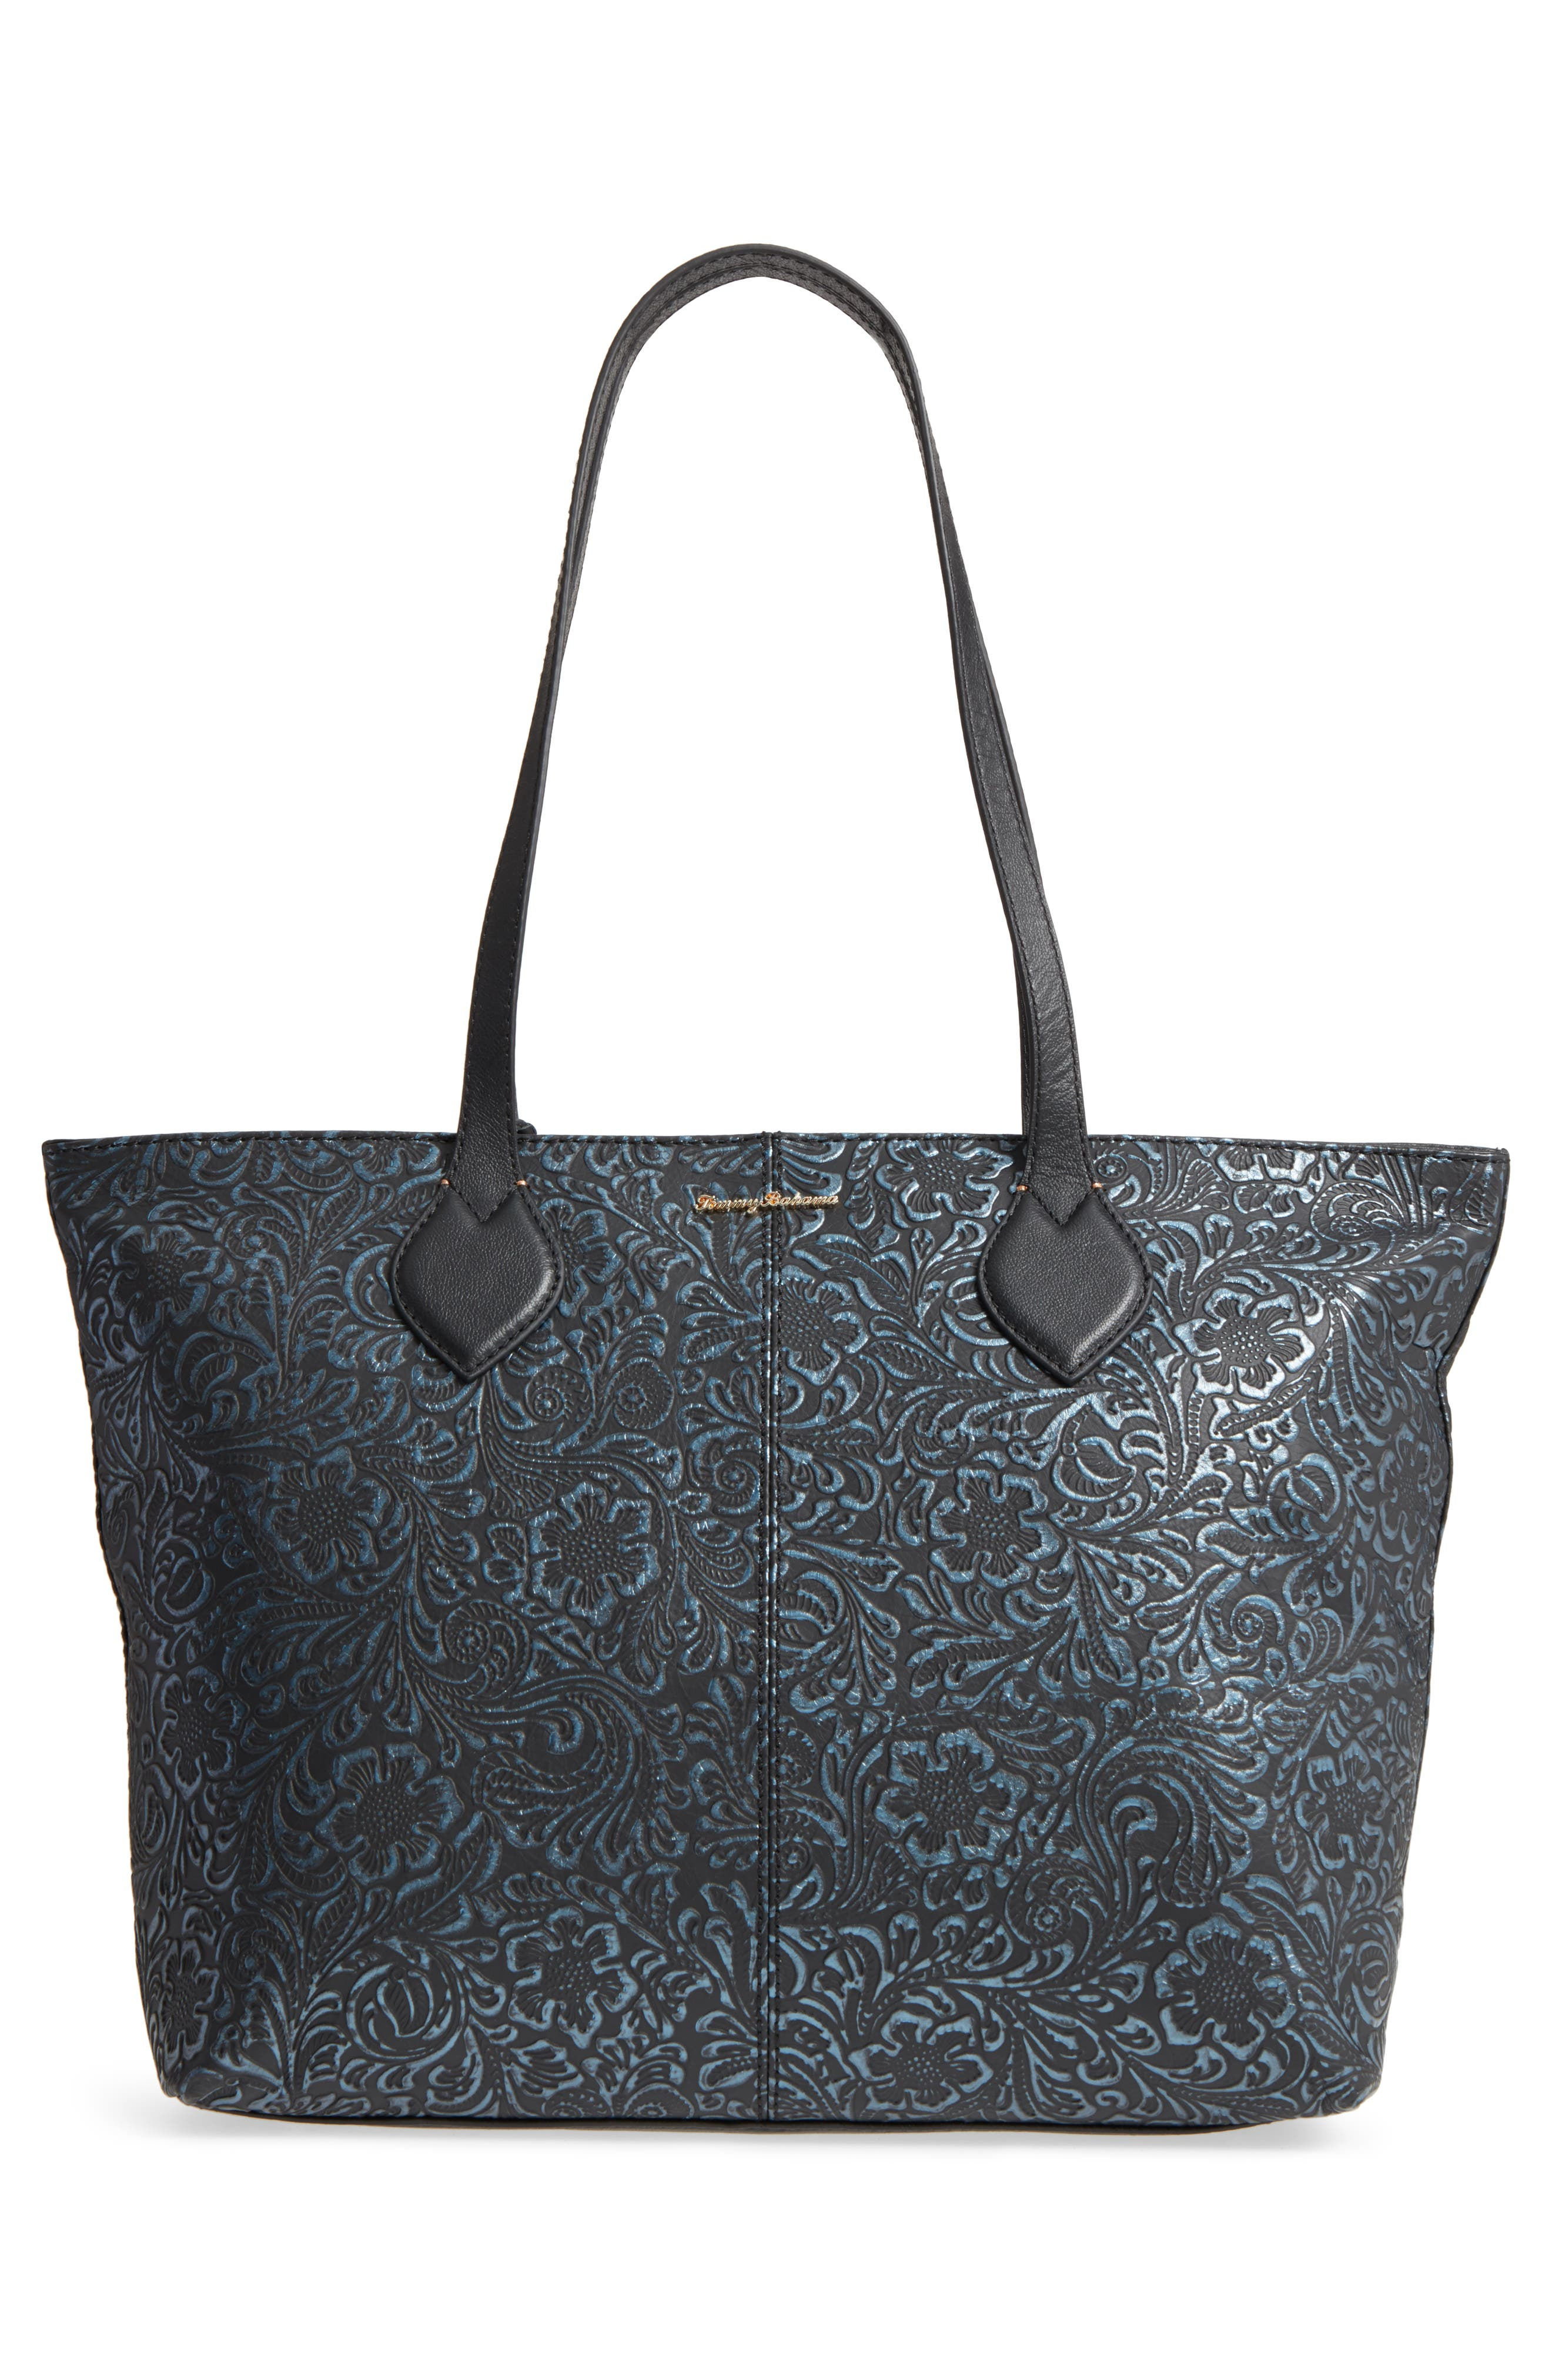 Barbados Leather Tote,                             Alternate thumbnail 3, color,                             001